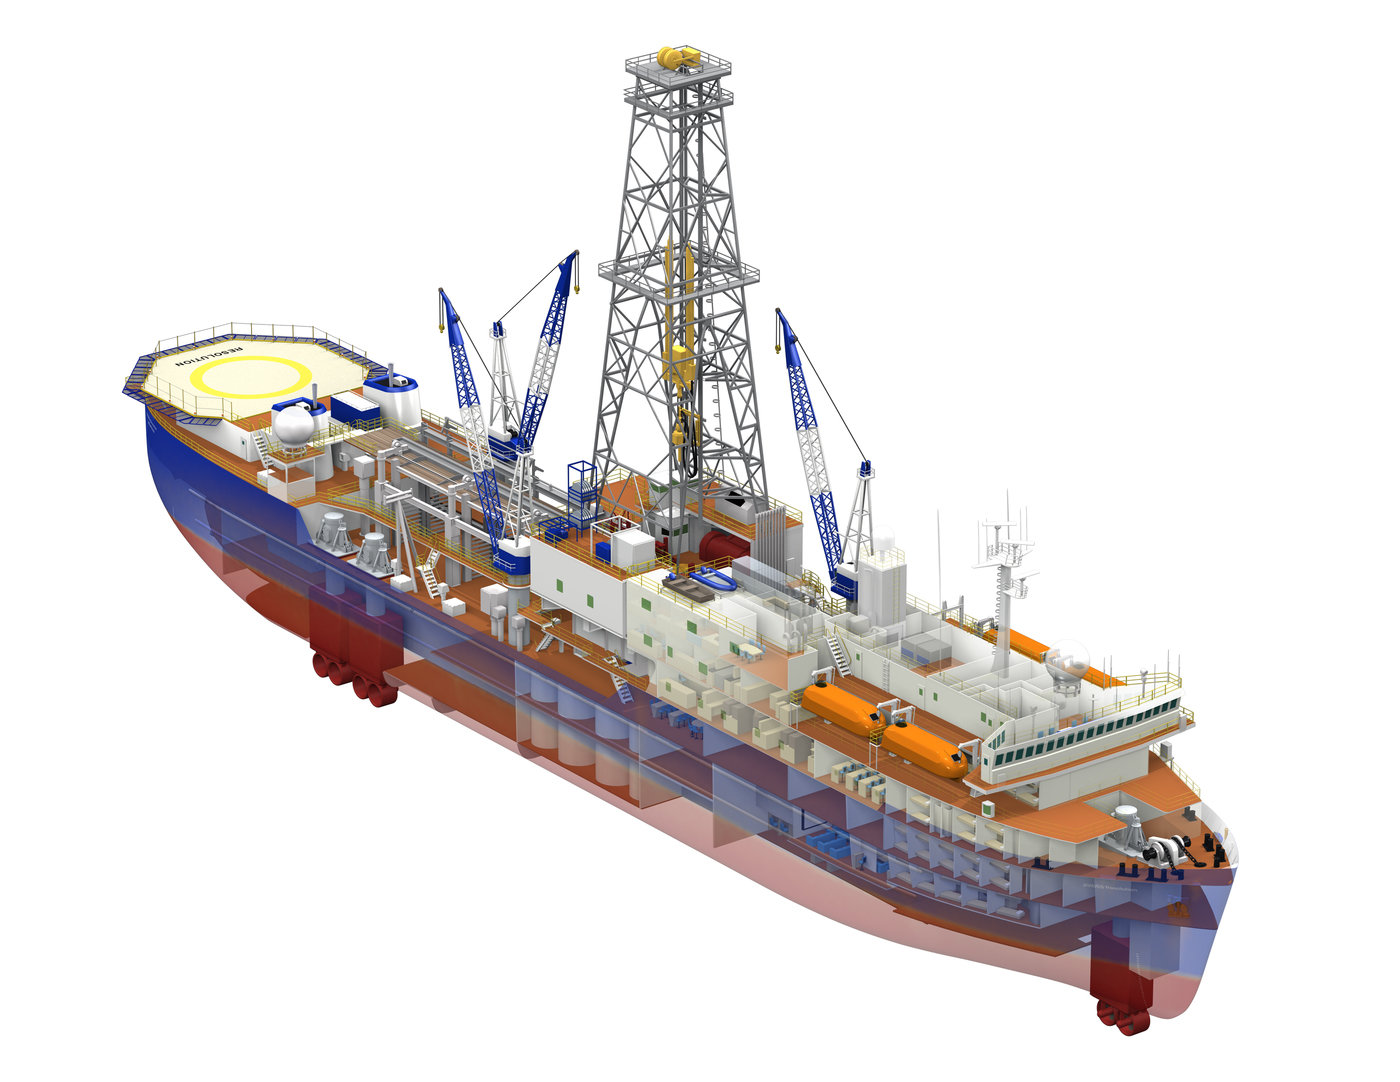 Joides Resolution Scientific Drilling Ship By Charles